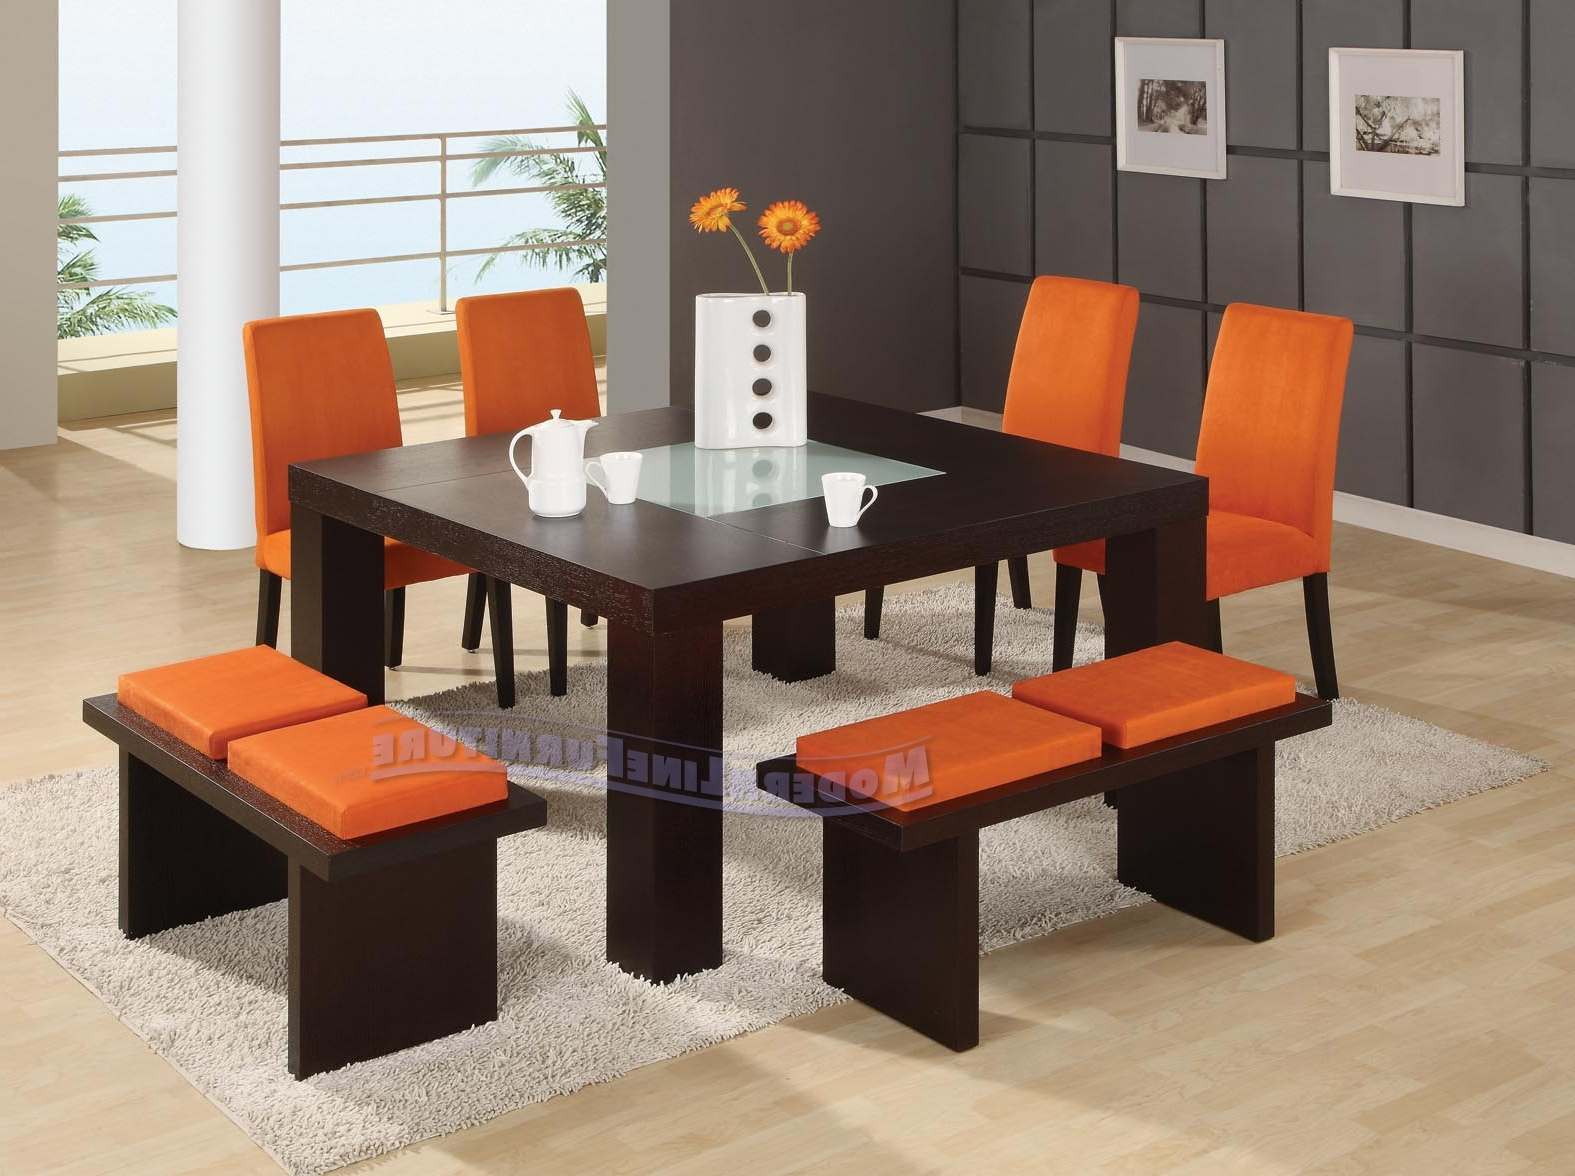 12. Unique Dining Table Home Interior Design 120 Cool Dining Tables pertaining to Most Up-to-Date Unusual Dining Tables For Sale